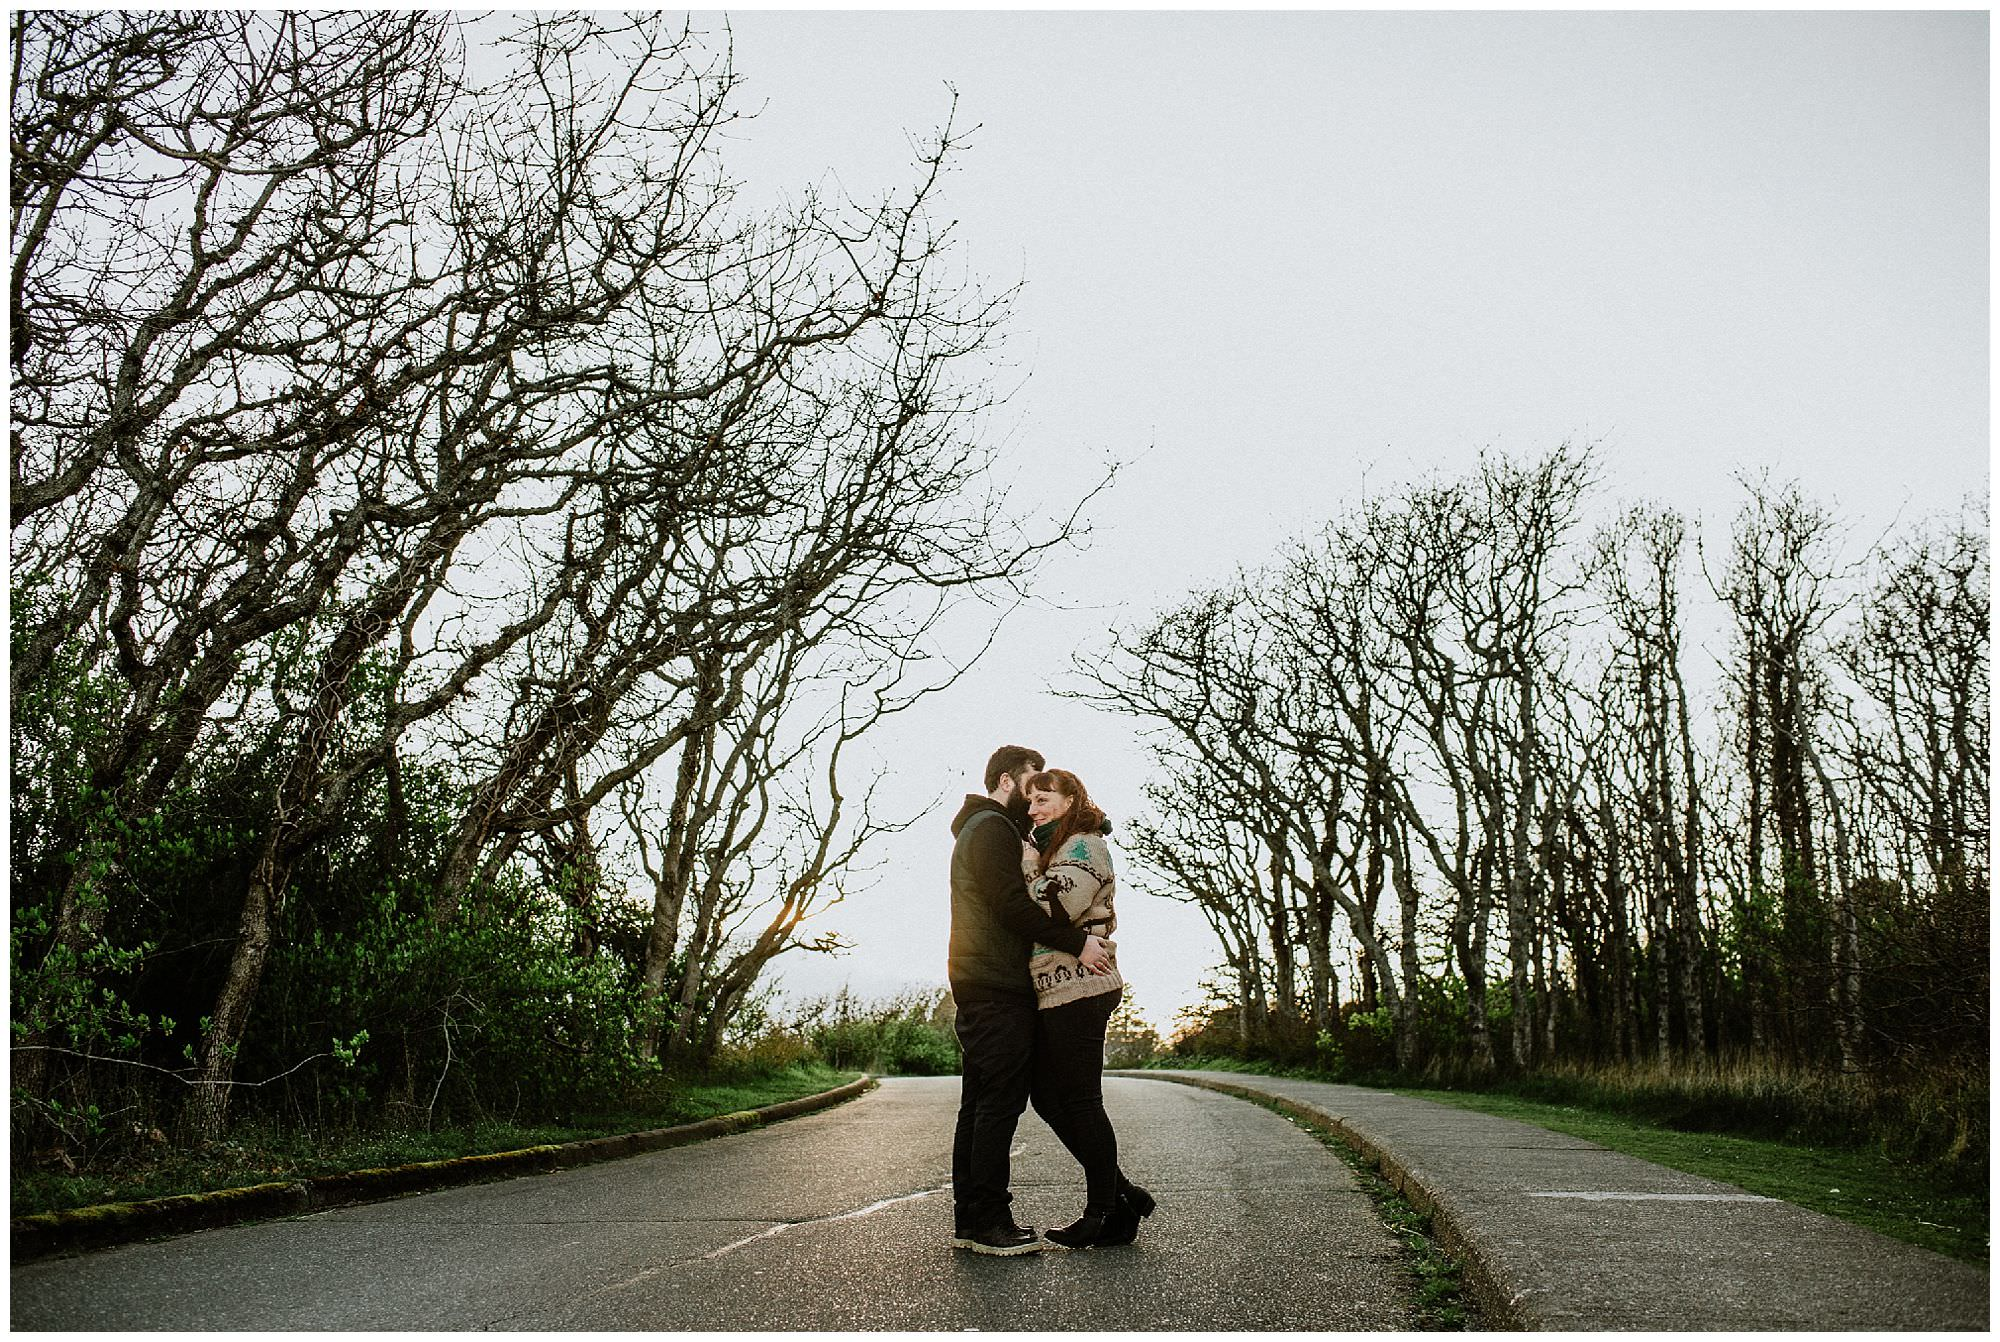 couple-standing-in-road-spring-sunset-engagement-photography-at-cattle-point-victoria-bc